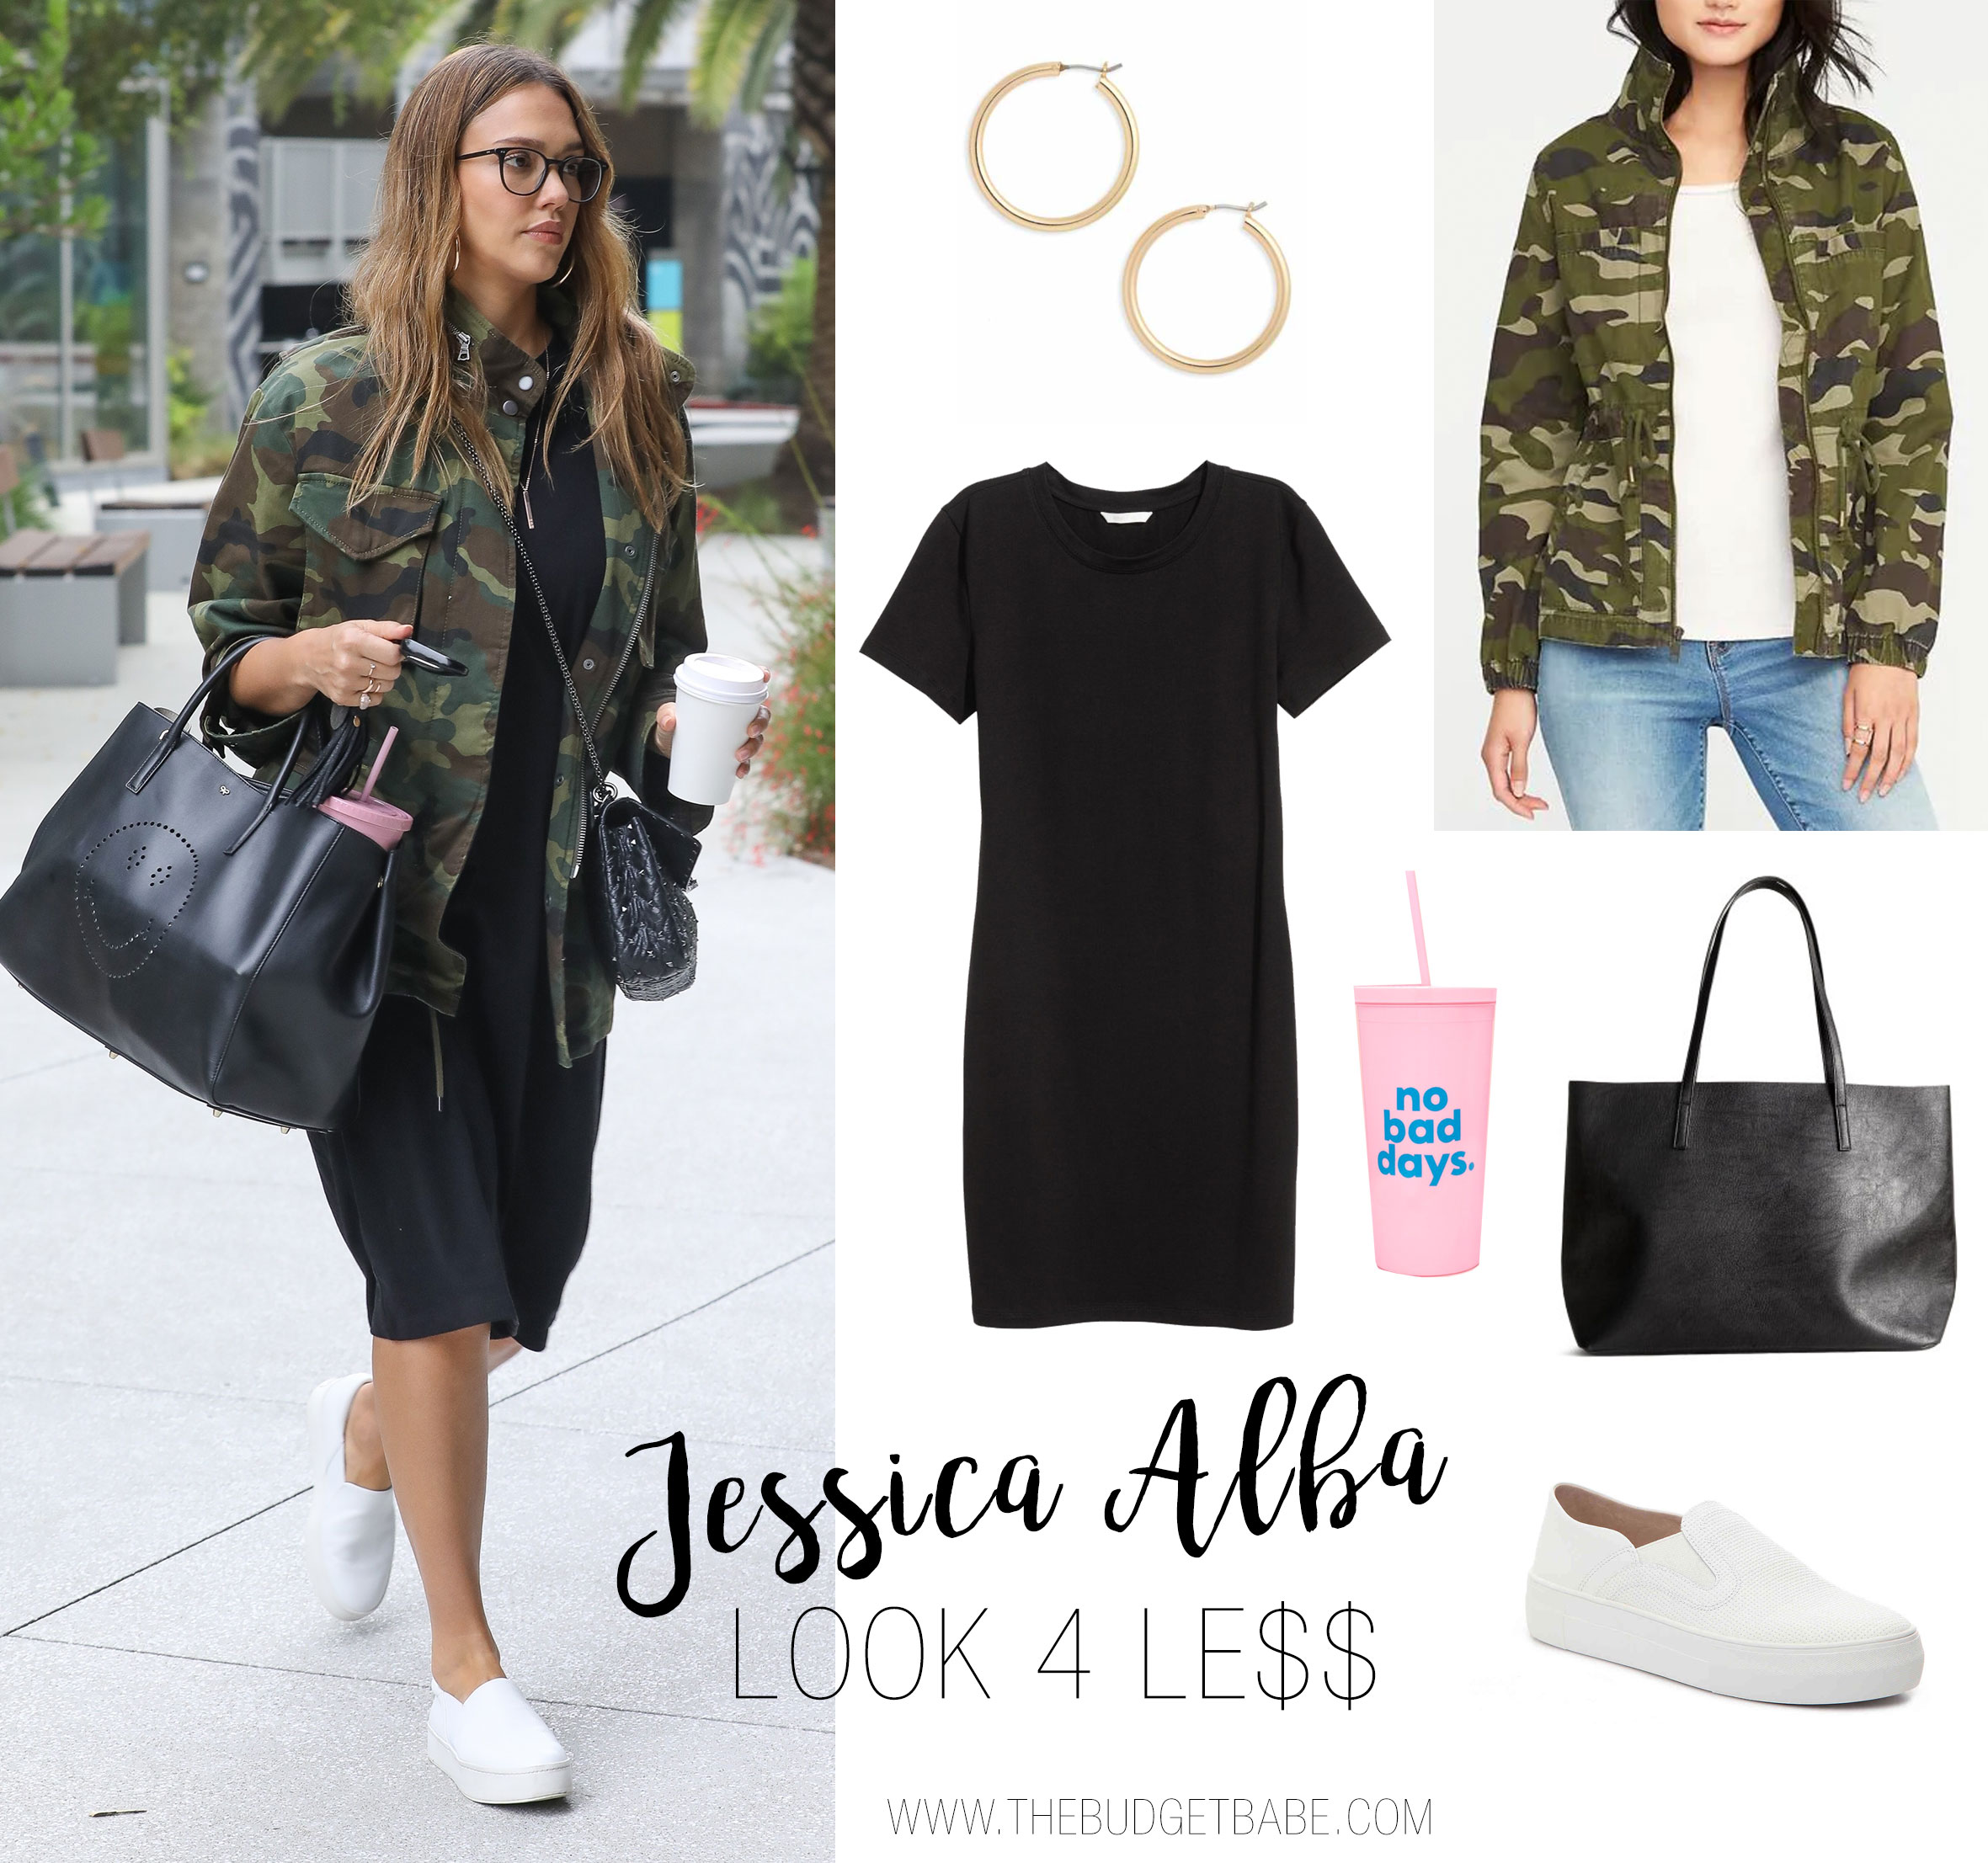 Jessica Alba wears her Alice and Olivia camo jacket with a black dress, Vince sneakers and Anya Hindmarch Smiley Tote Bag.